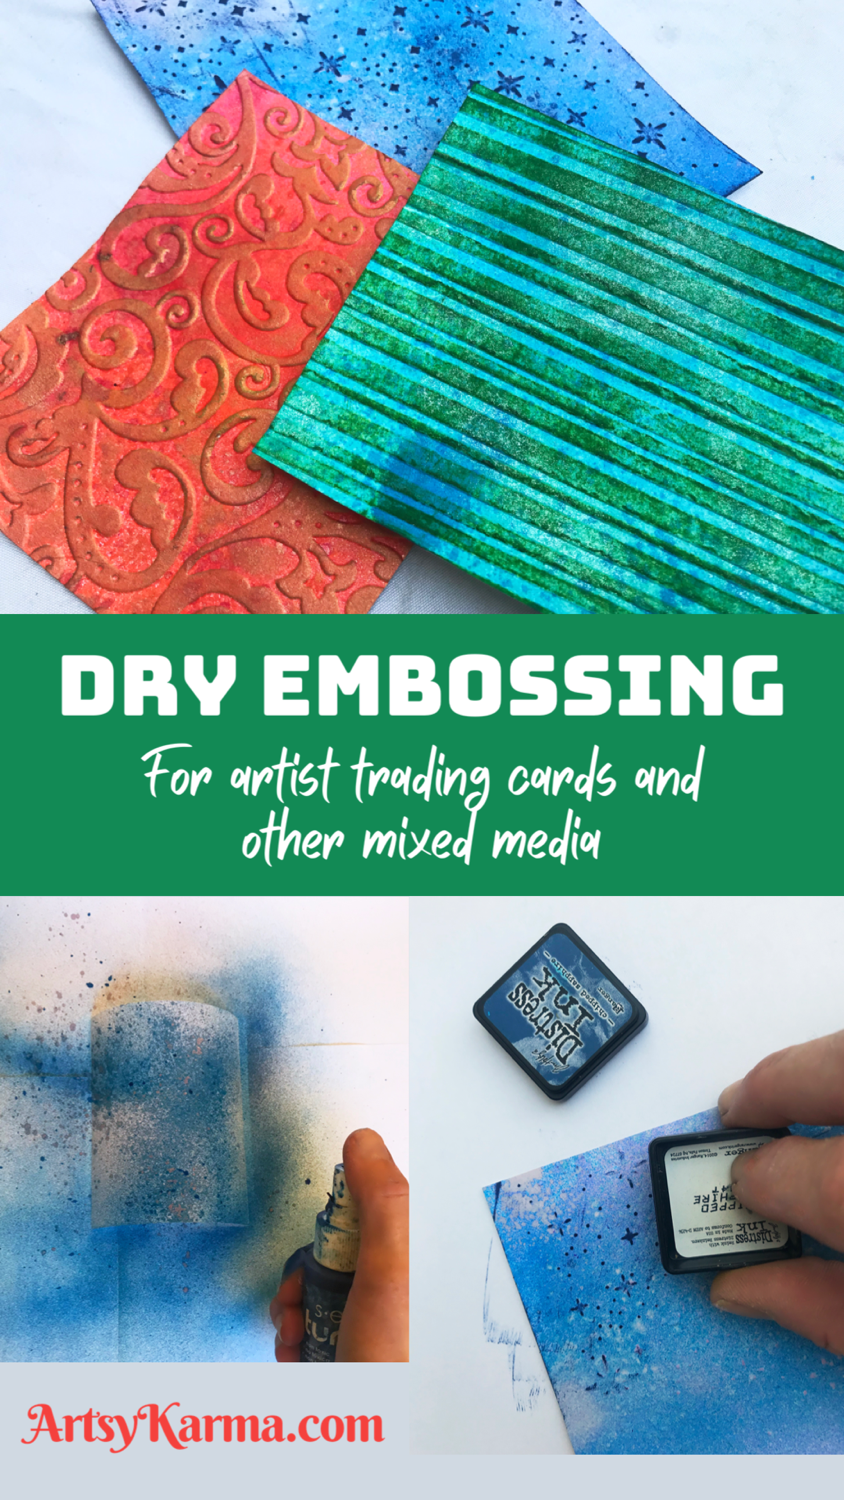 Dry embossing for artist trading cards and other mixed media